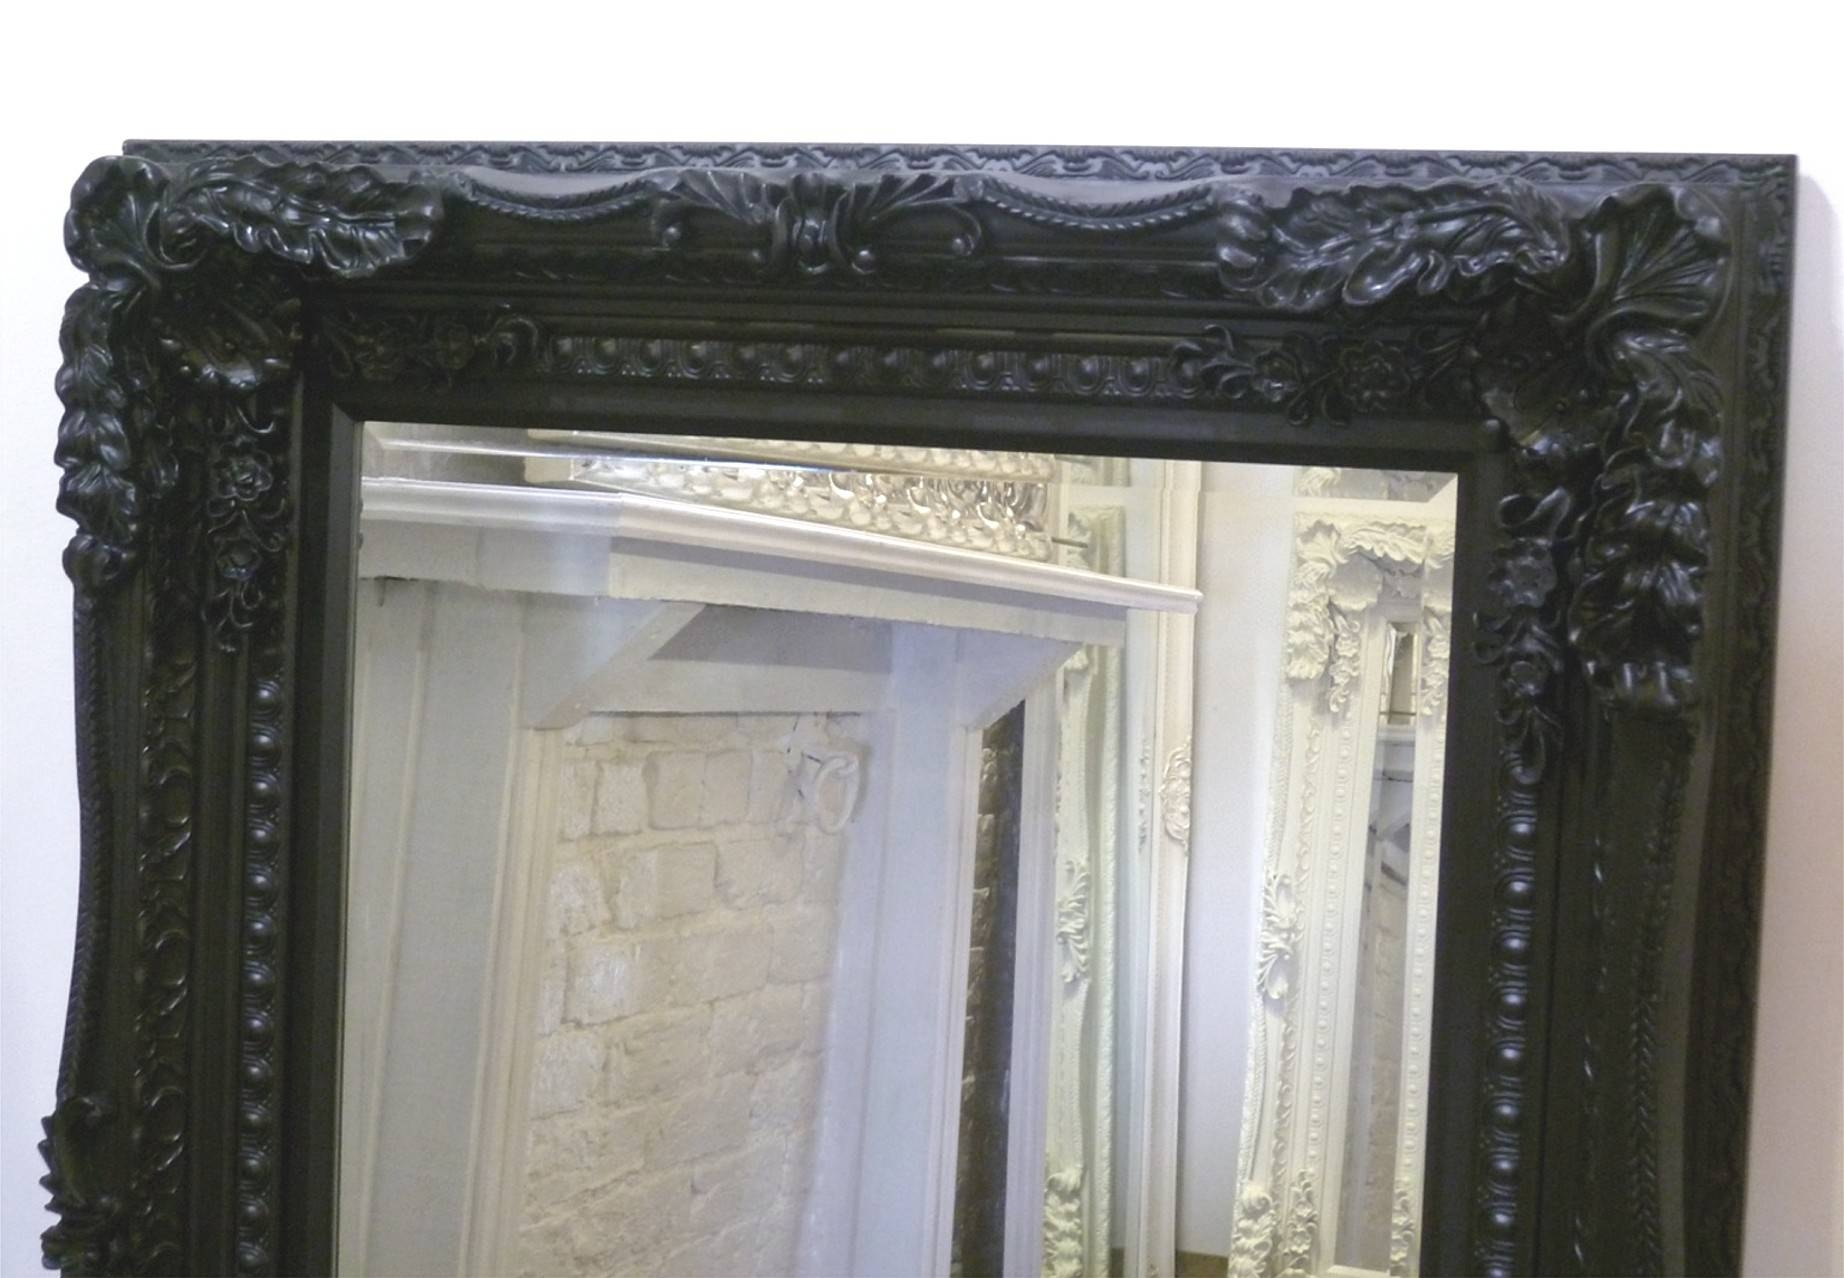 The Best Value Black Chelsea Ornate Mirrors Online. intended for Ornate Black Mirrors (Image 12 of 15)